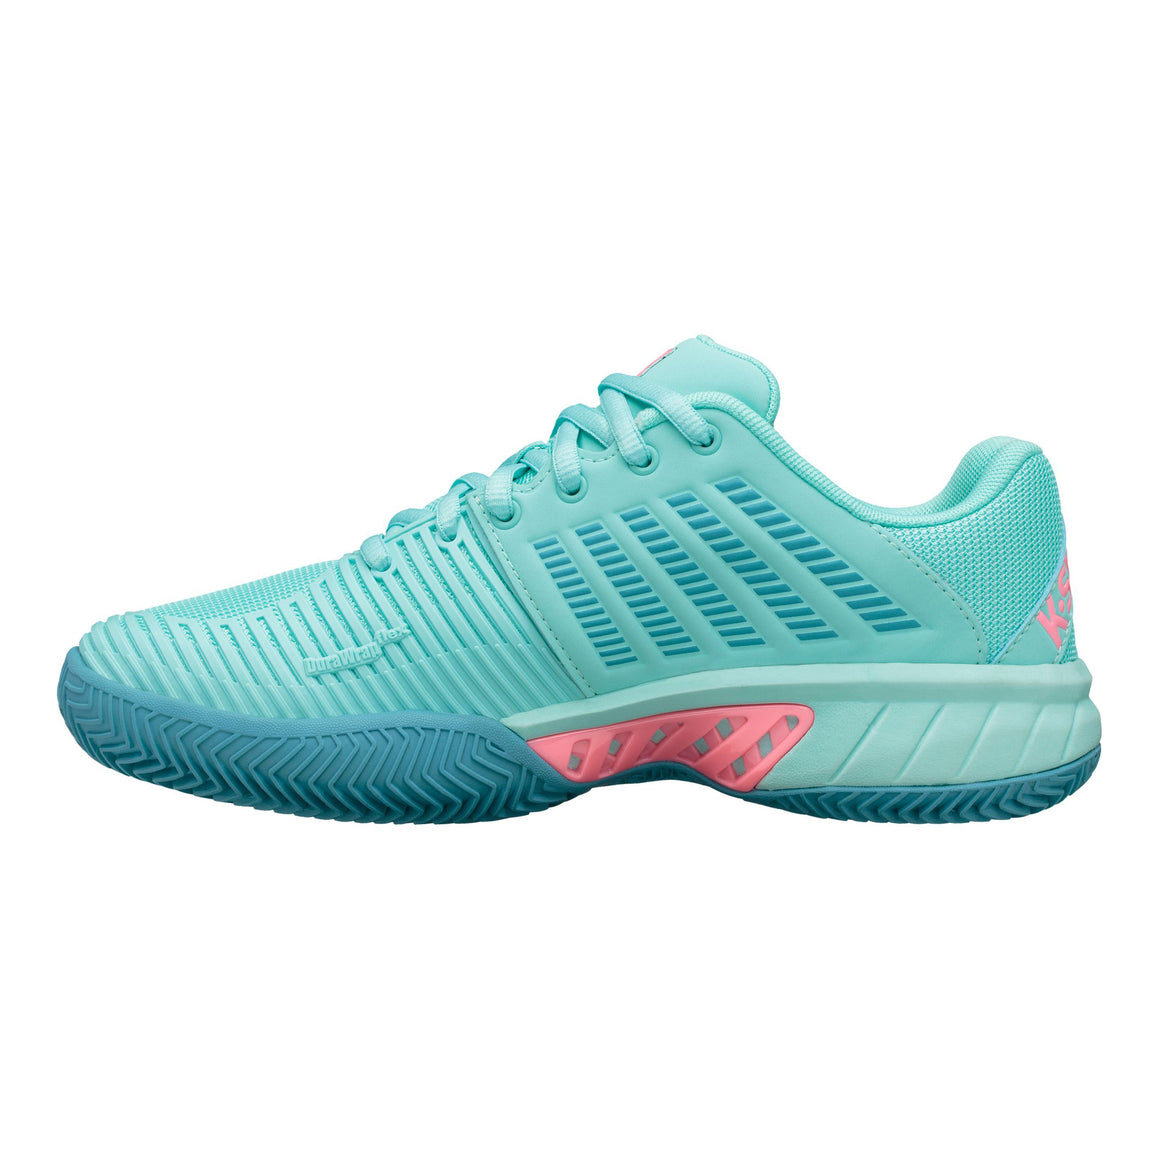 Express Light 2 Trainers for Women in Blue/Blue/Pink